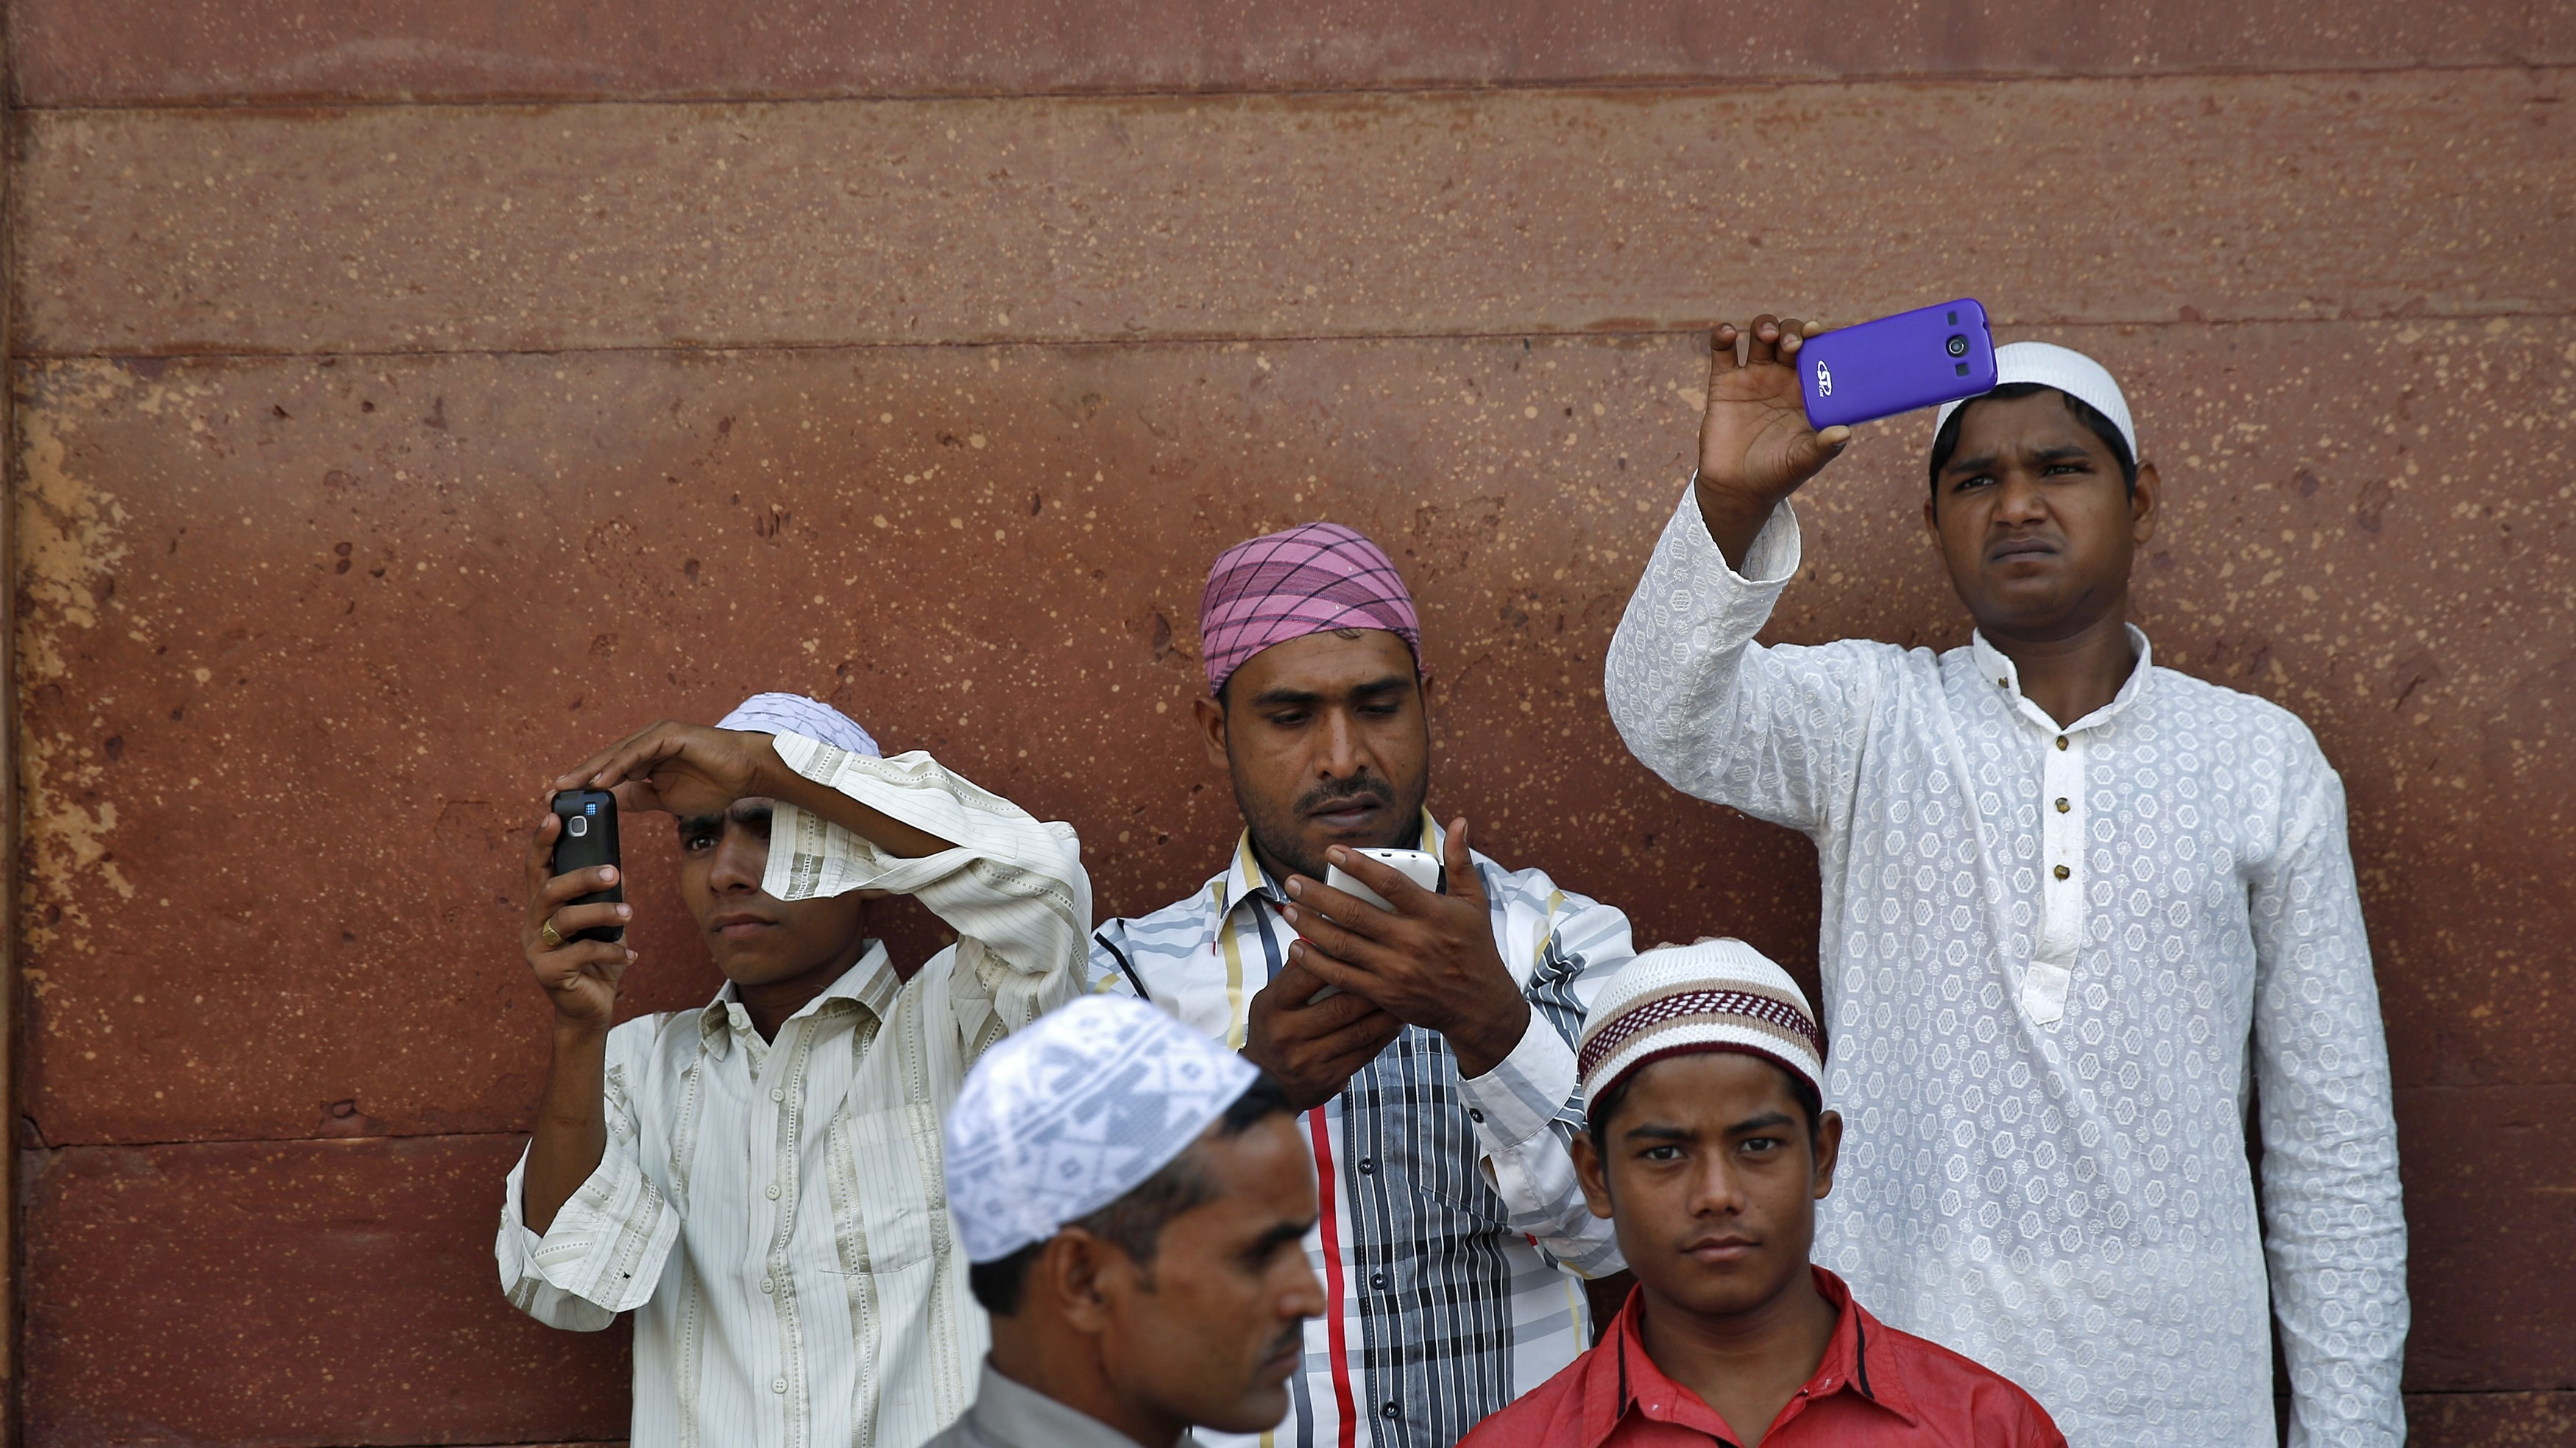 Muslims use their mobile phones after offering Eid al-Adha prayers at the Jama Masjid (Grand Mosque) in the old quarters of Delhi October 6, 2014. Muslims around the world celebrate Eid al-Adha by the sacrificial killing of sheep, goats, cows and camels to commemorate Prophet Abraham's willingness to sacrifice his son Ismail on God's command. REUTERS/Ahmad Masood